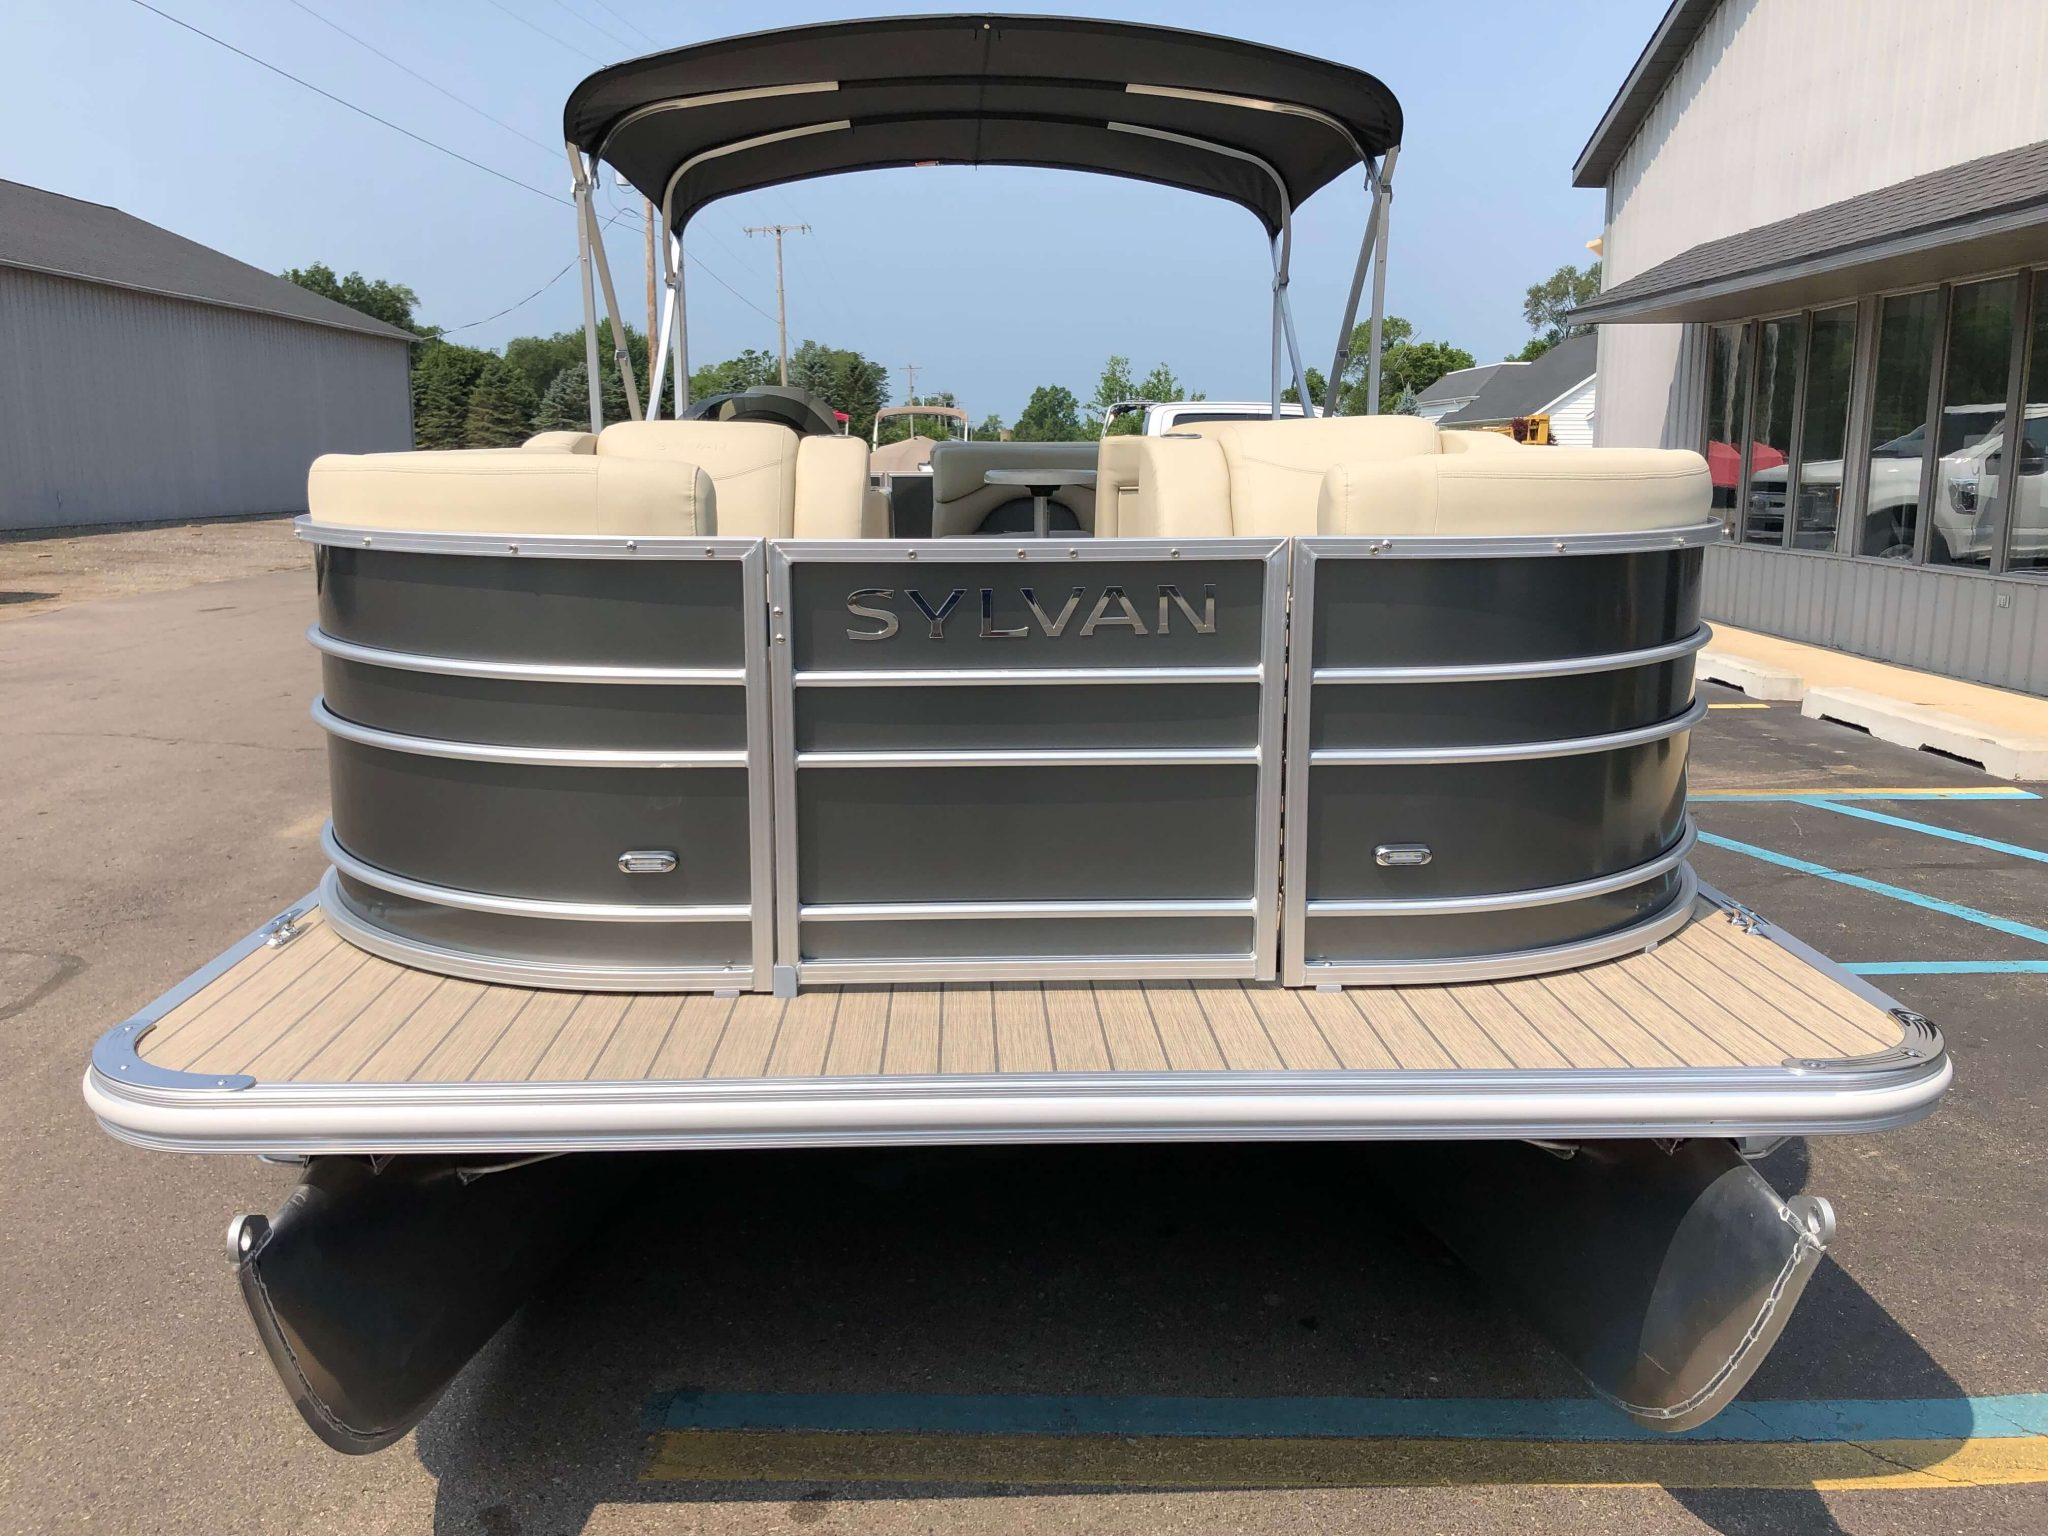 2019 Sylvan 8522 Cruise Carbon Pontoon Boat 5